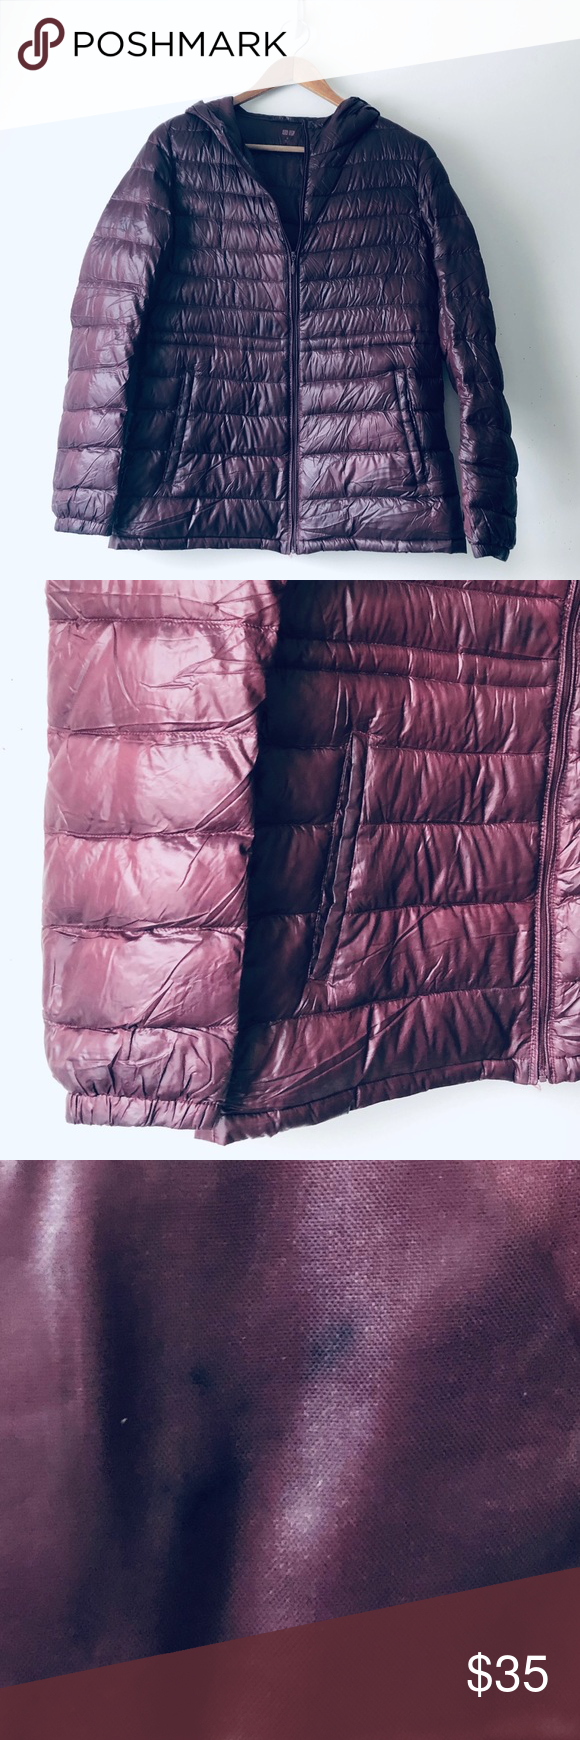 Uniqlo Maroon Puffer Down Jacket (M) in 2020 Down jacket